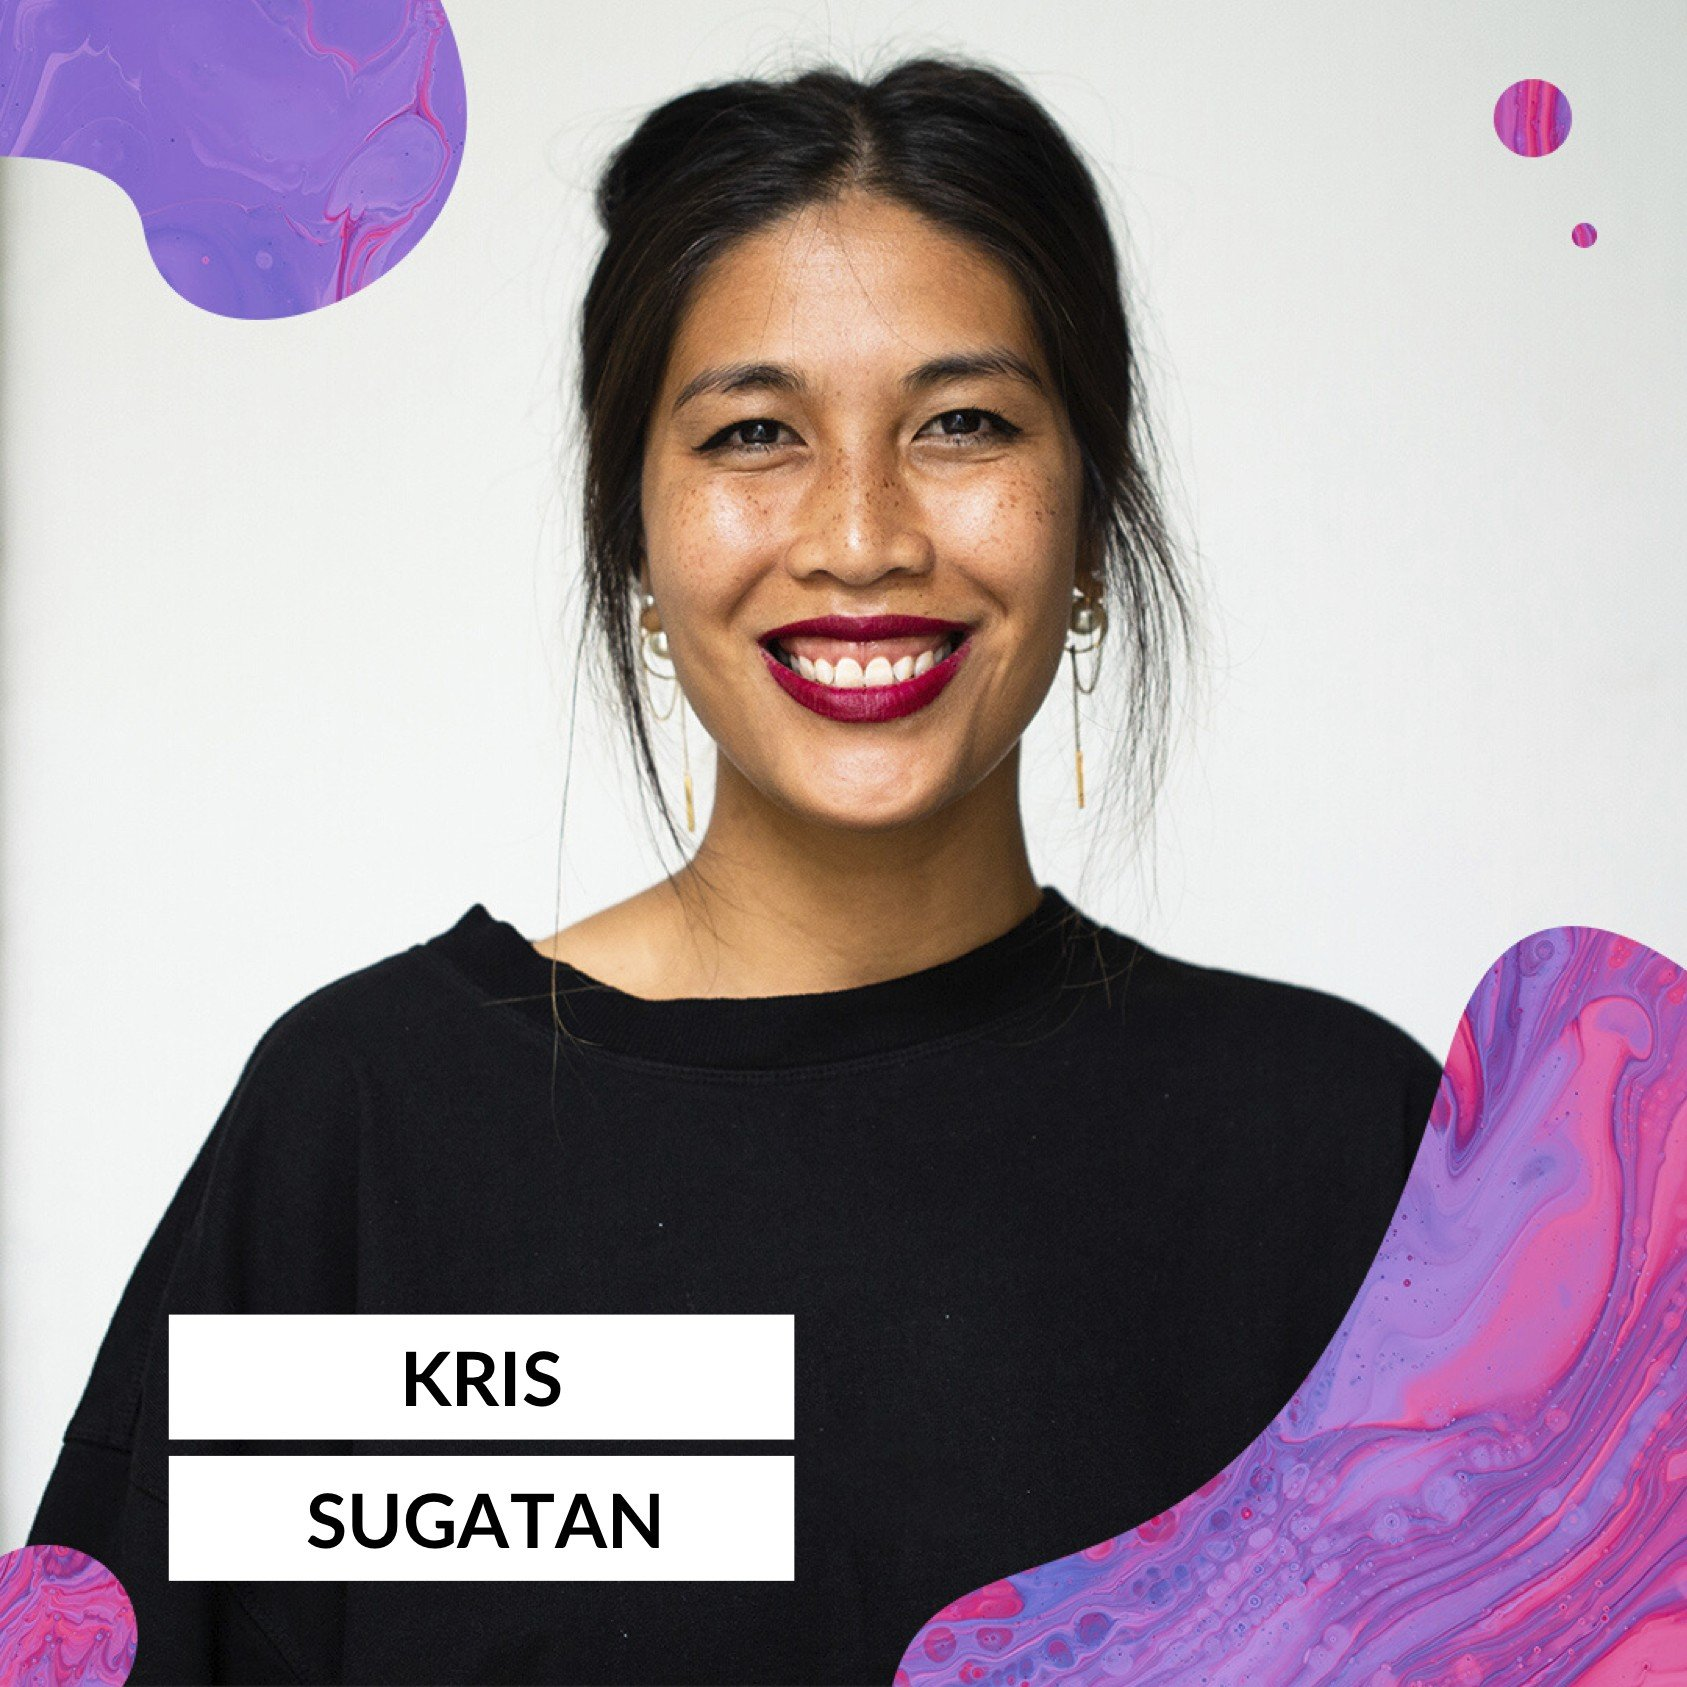 #1 Kris Sugatan – How to Create 7-Figure Agency, Scale eCommerces and Importance of Burning it All Behind